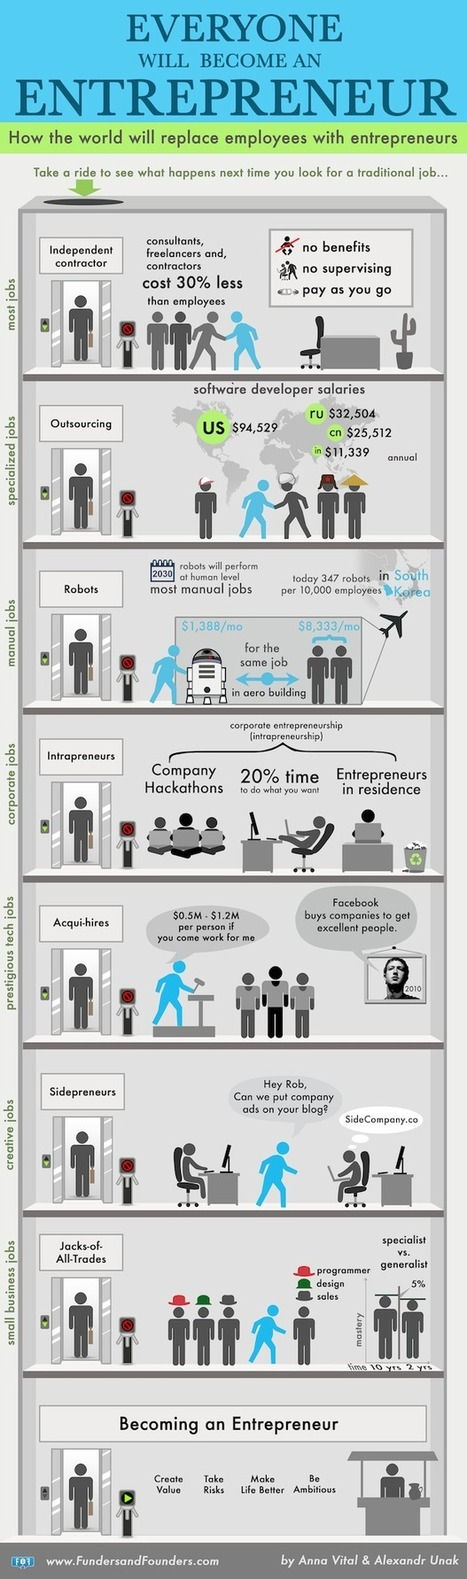 Everyone Will Have to Become an Entrepreneur | Recruitment & Technology | Scoop.it